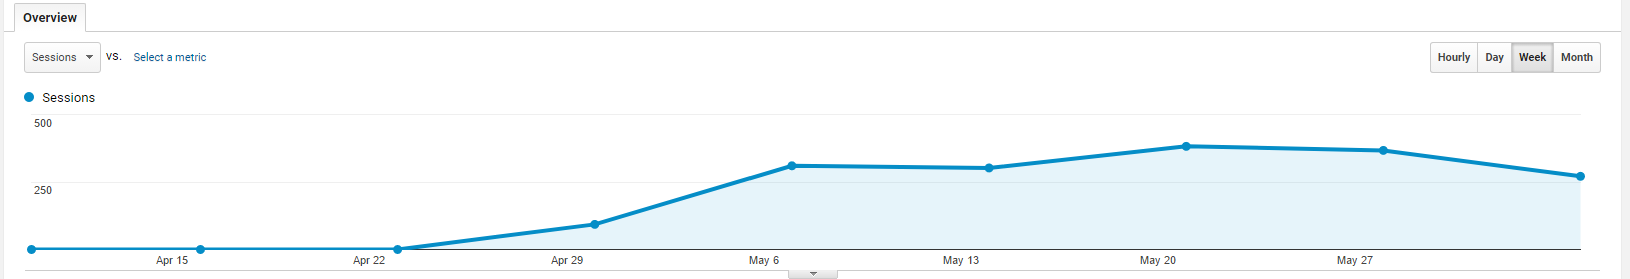 Website traffic graph